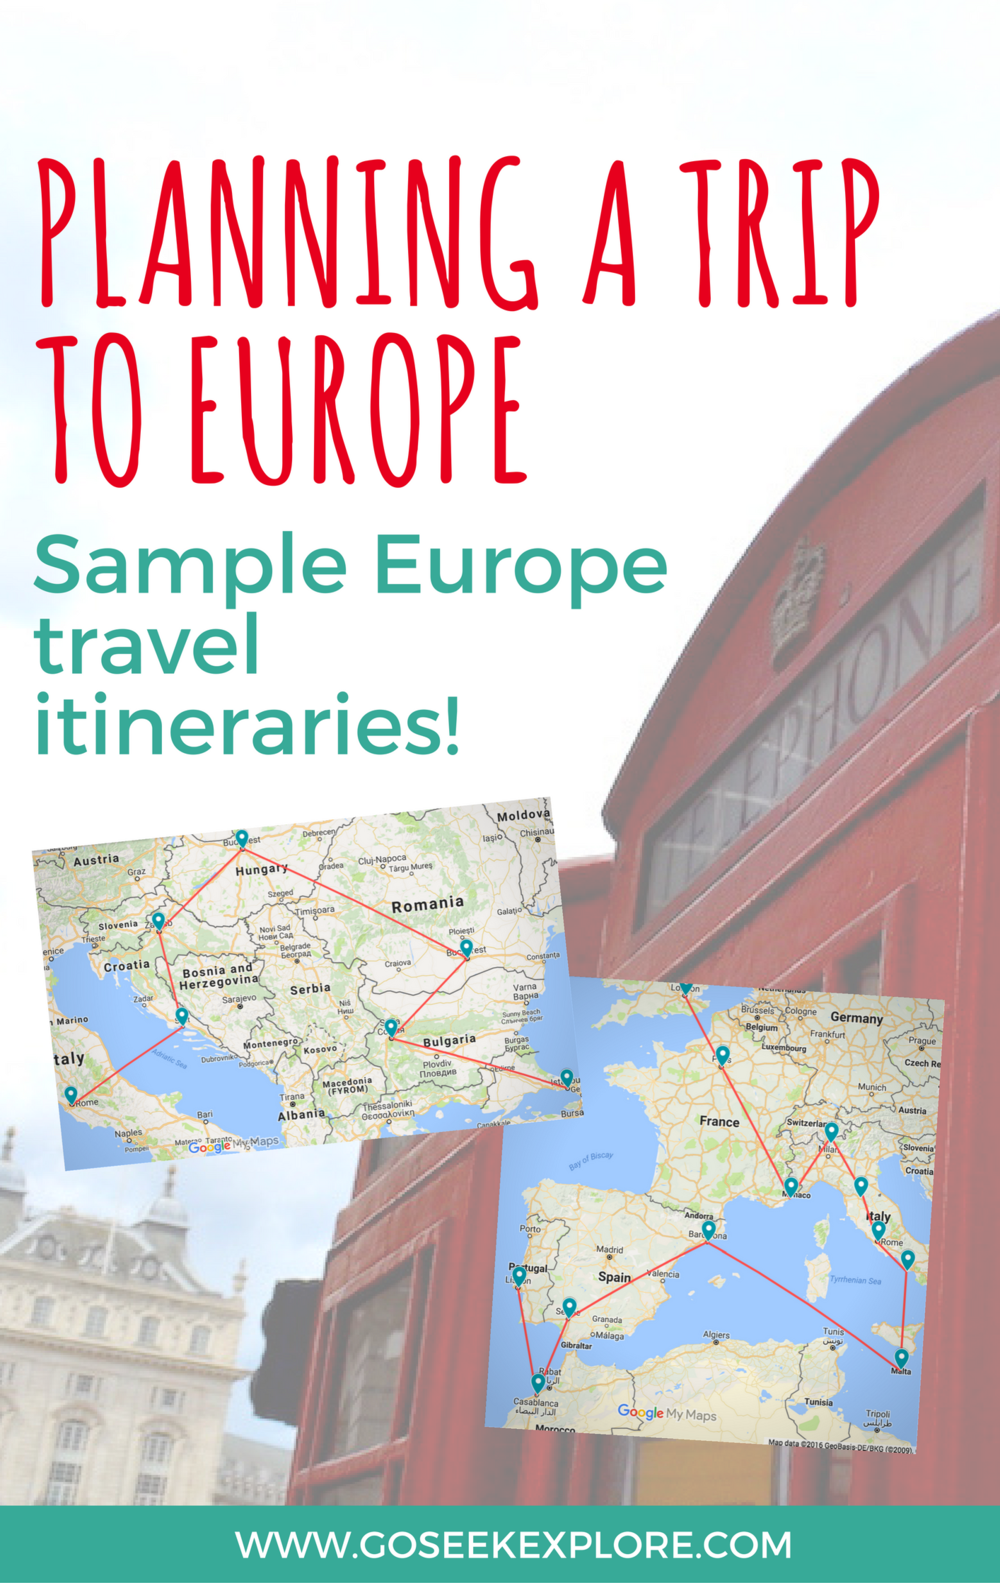 How To Plan a Trip to Europe: Sample Travel Itineraries \u2014 GO SEEK ...